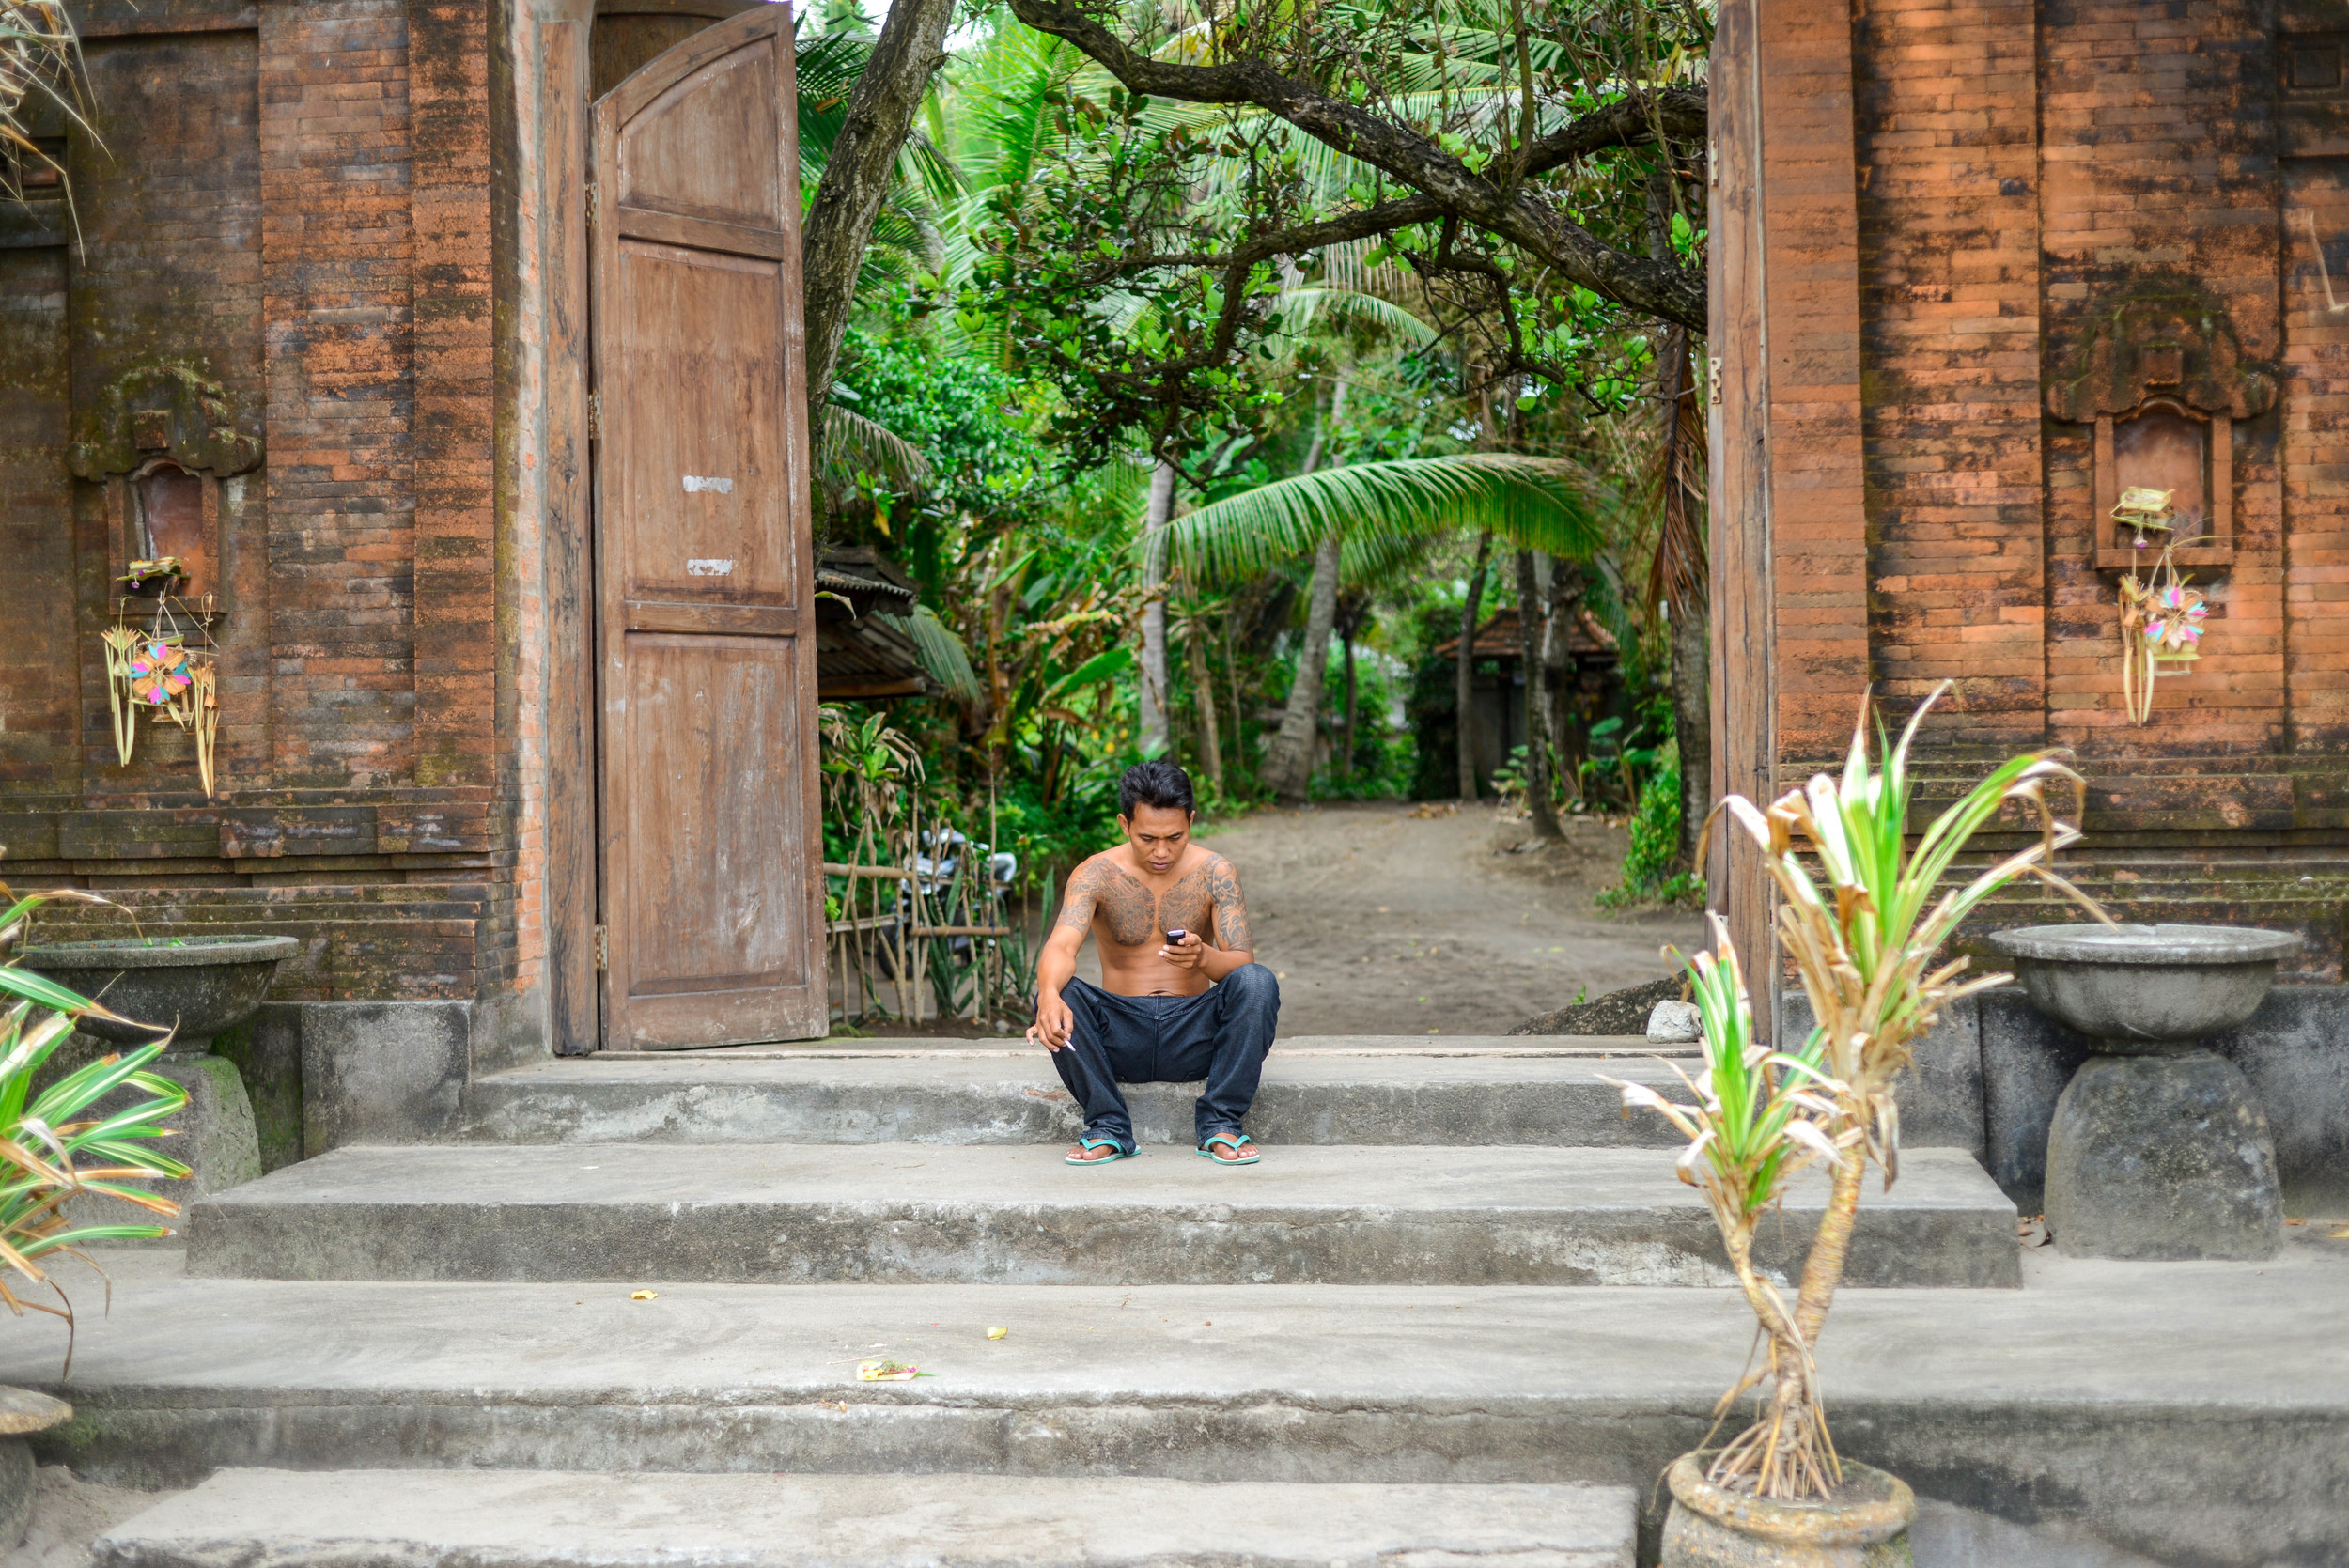 A local at the entry of a temple in Seminyak.